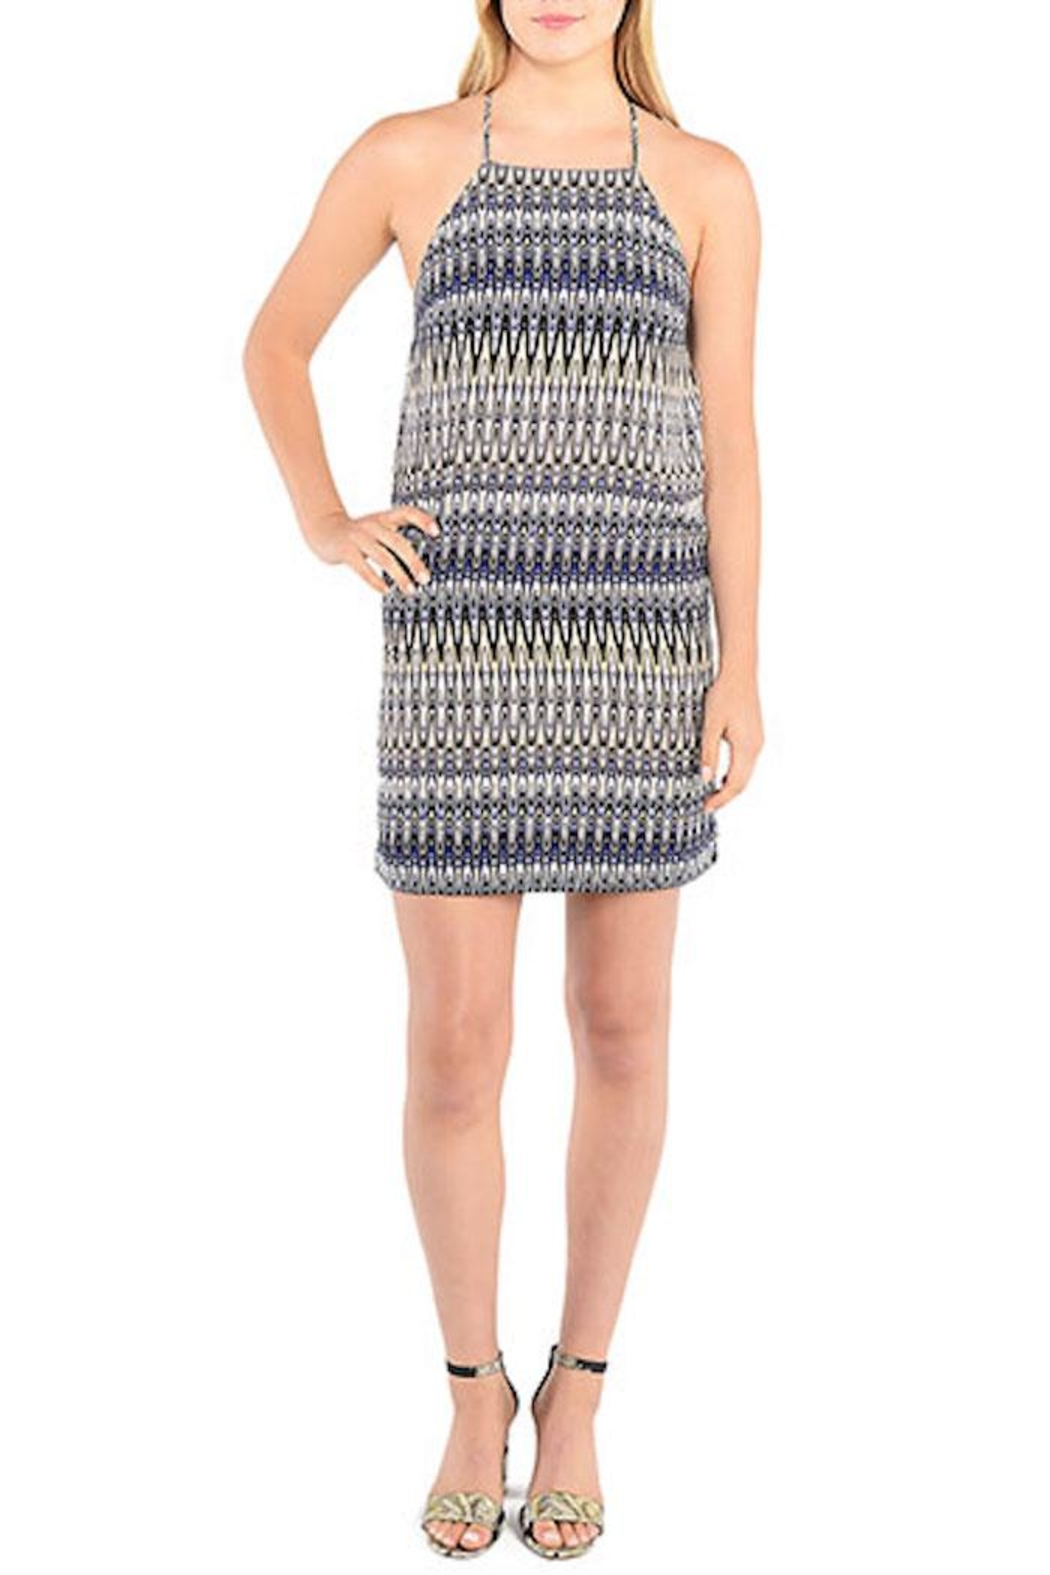 Kensie Strappy Patterned Shift Dress - Main Image